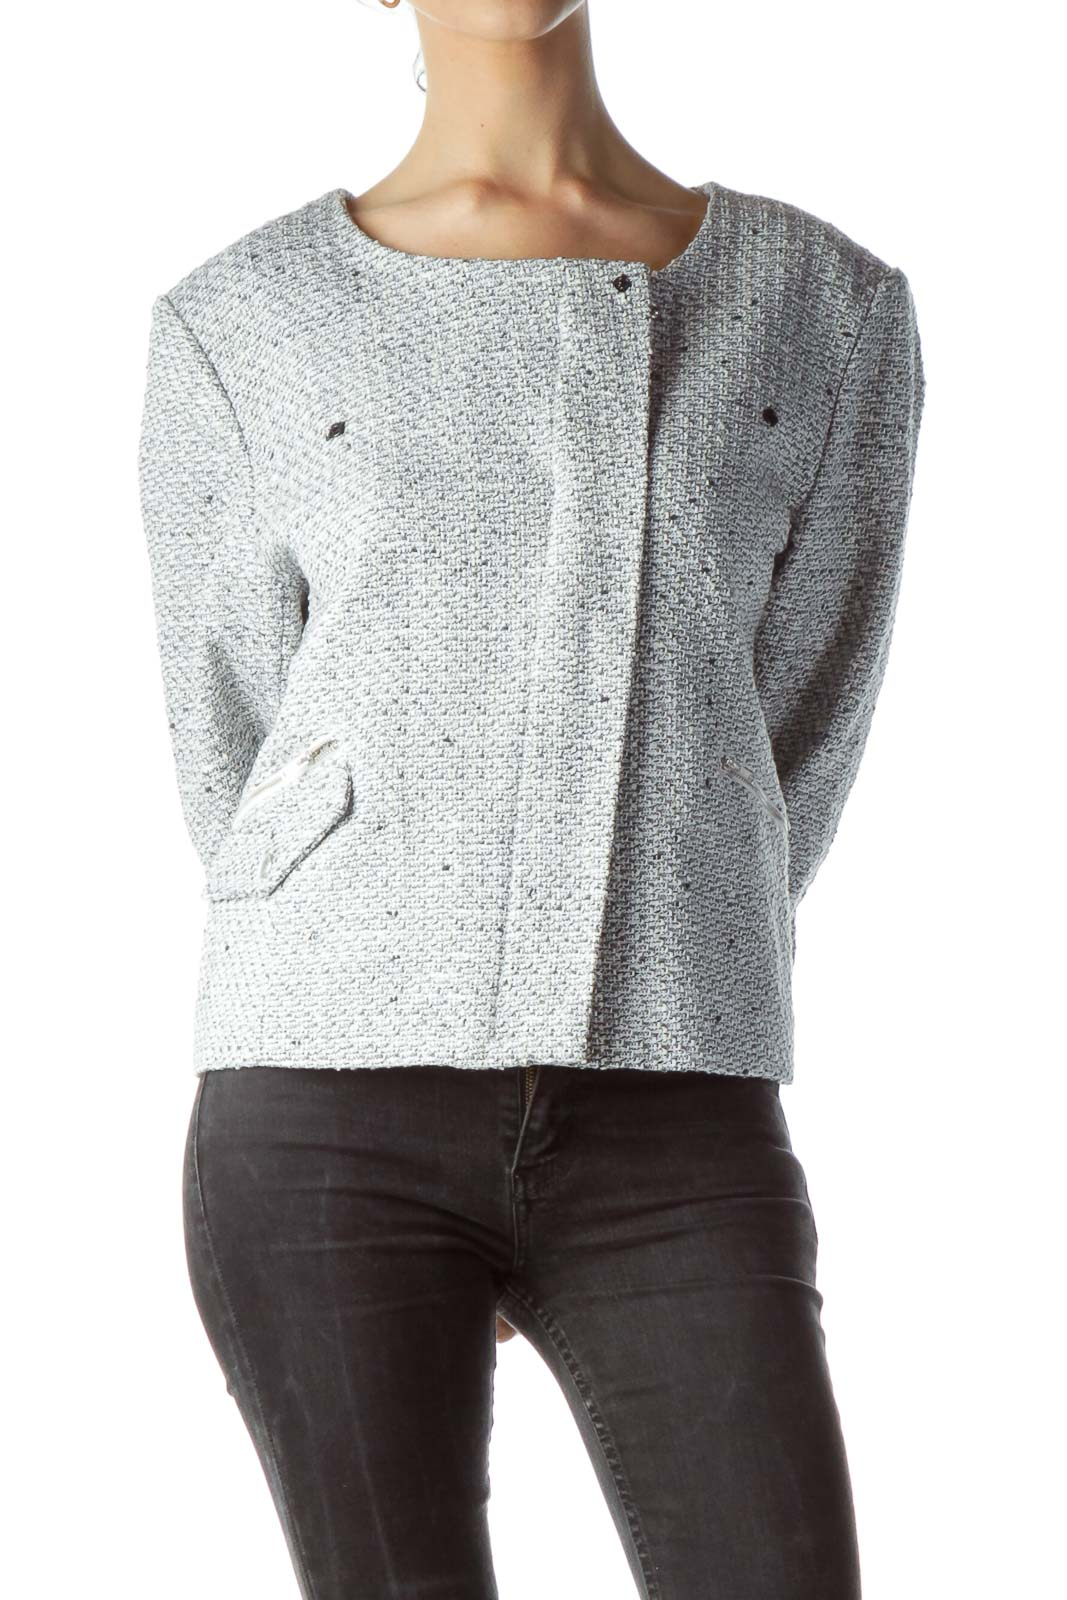 Gray Cream WhiteTextured Zippered Blazer